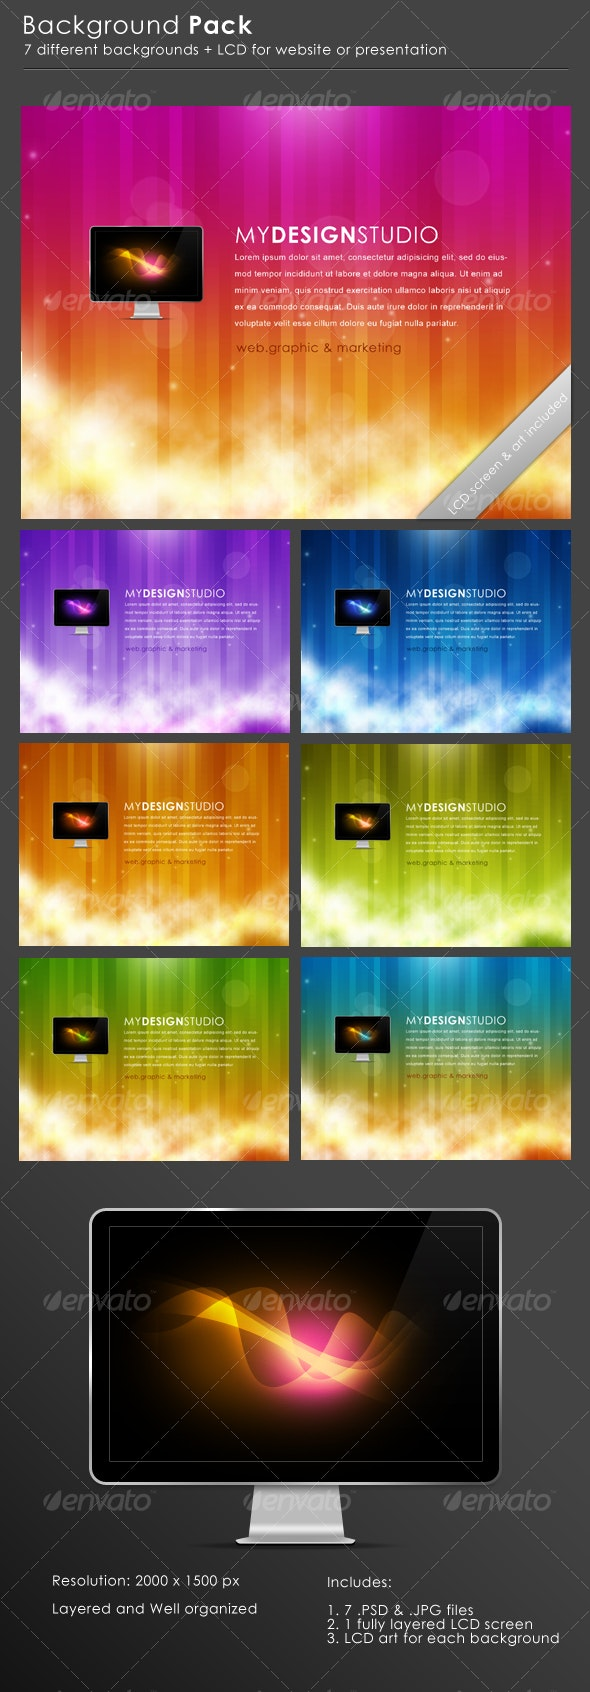 Website Backgrounds Pack - Backgrounds Graphics